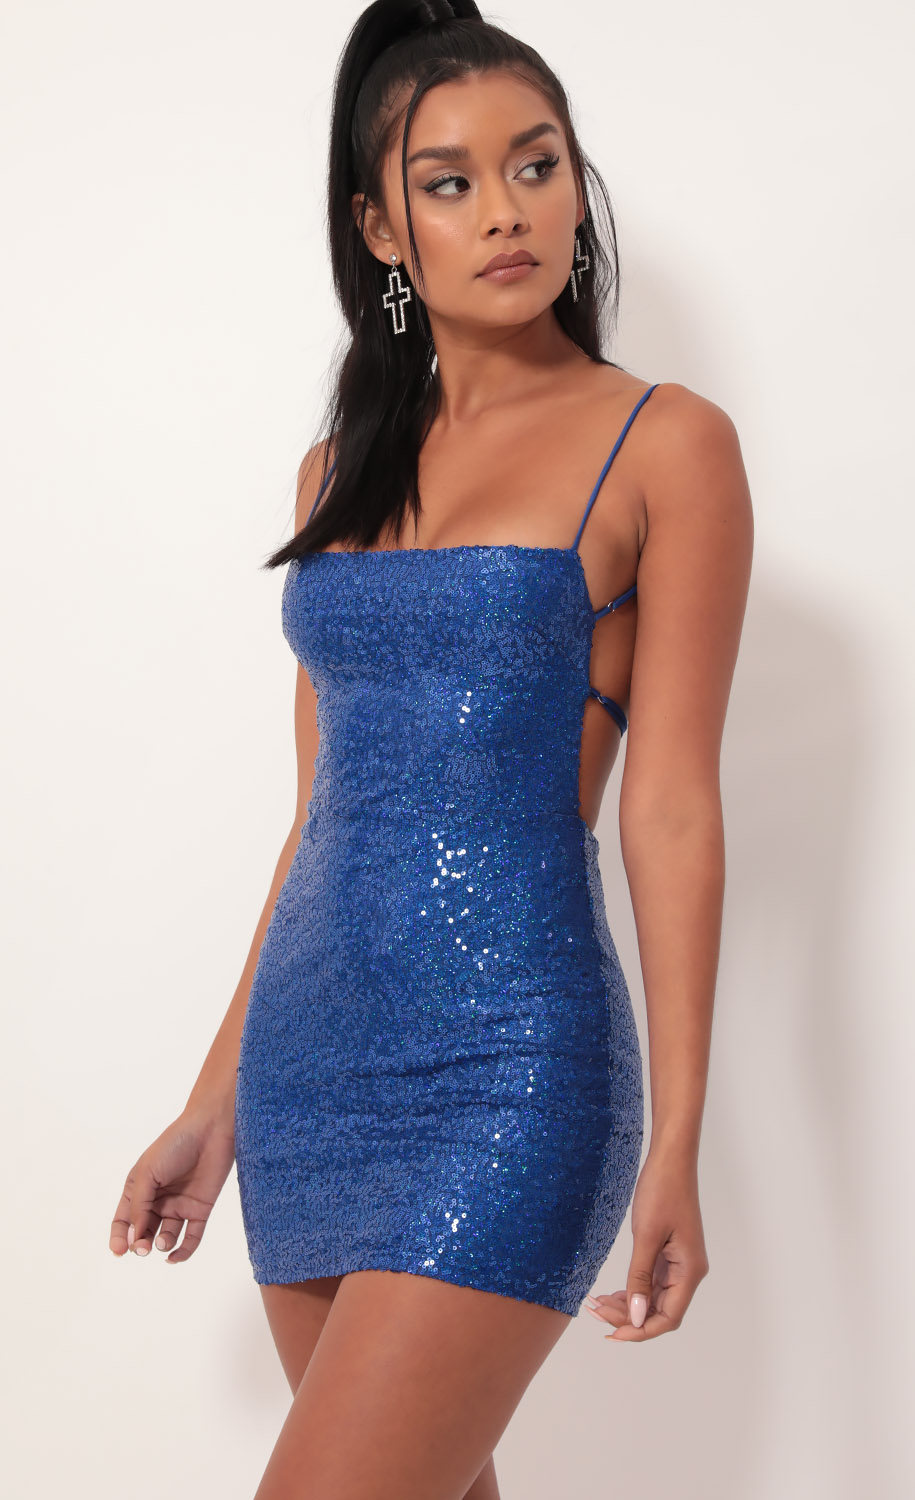 Starstruck Strappy Dress in Lapis Blue